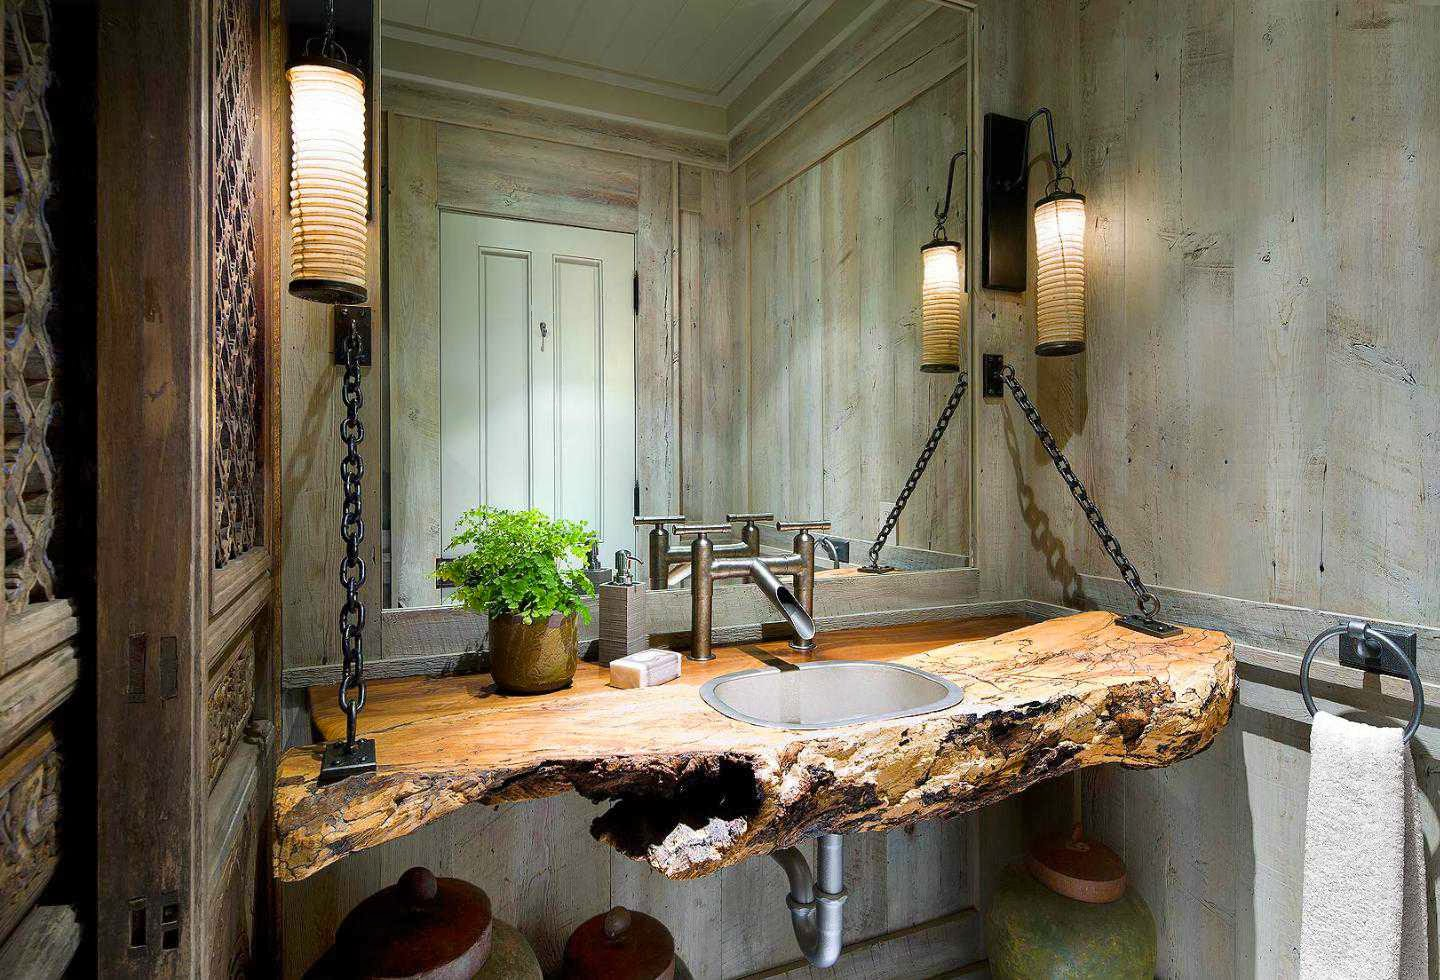 Western and Rustic Bathroom Decor Ideas title=